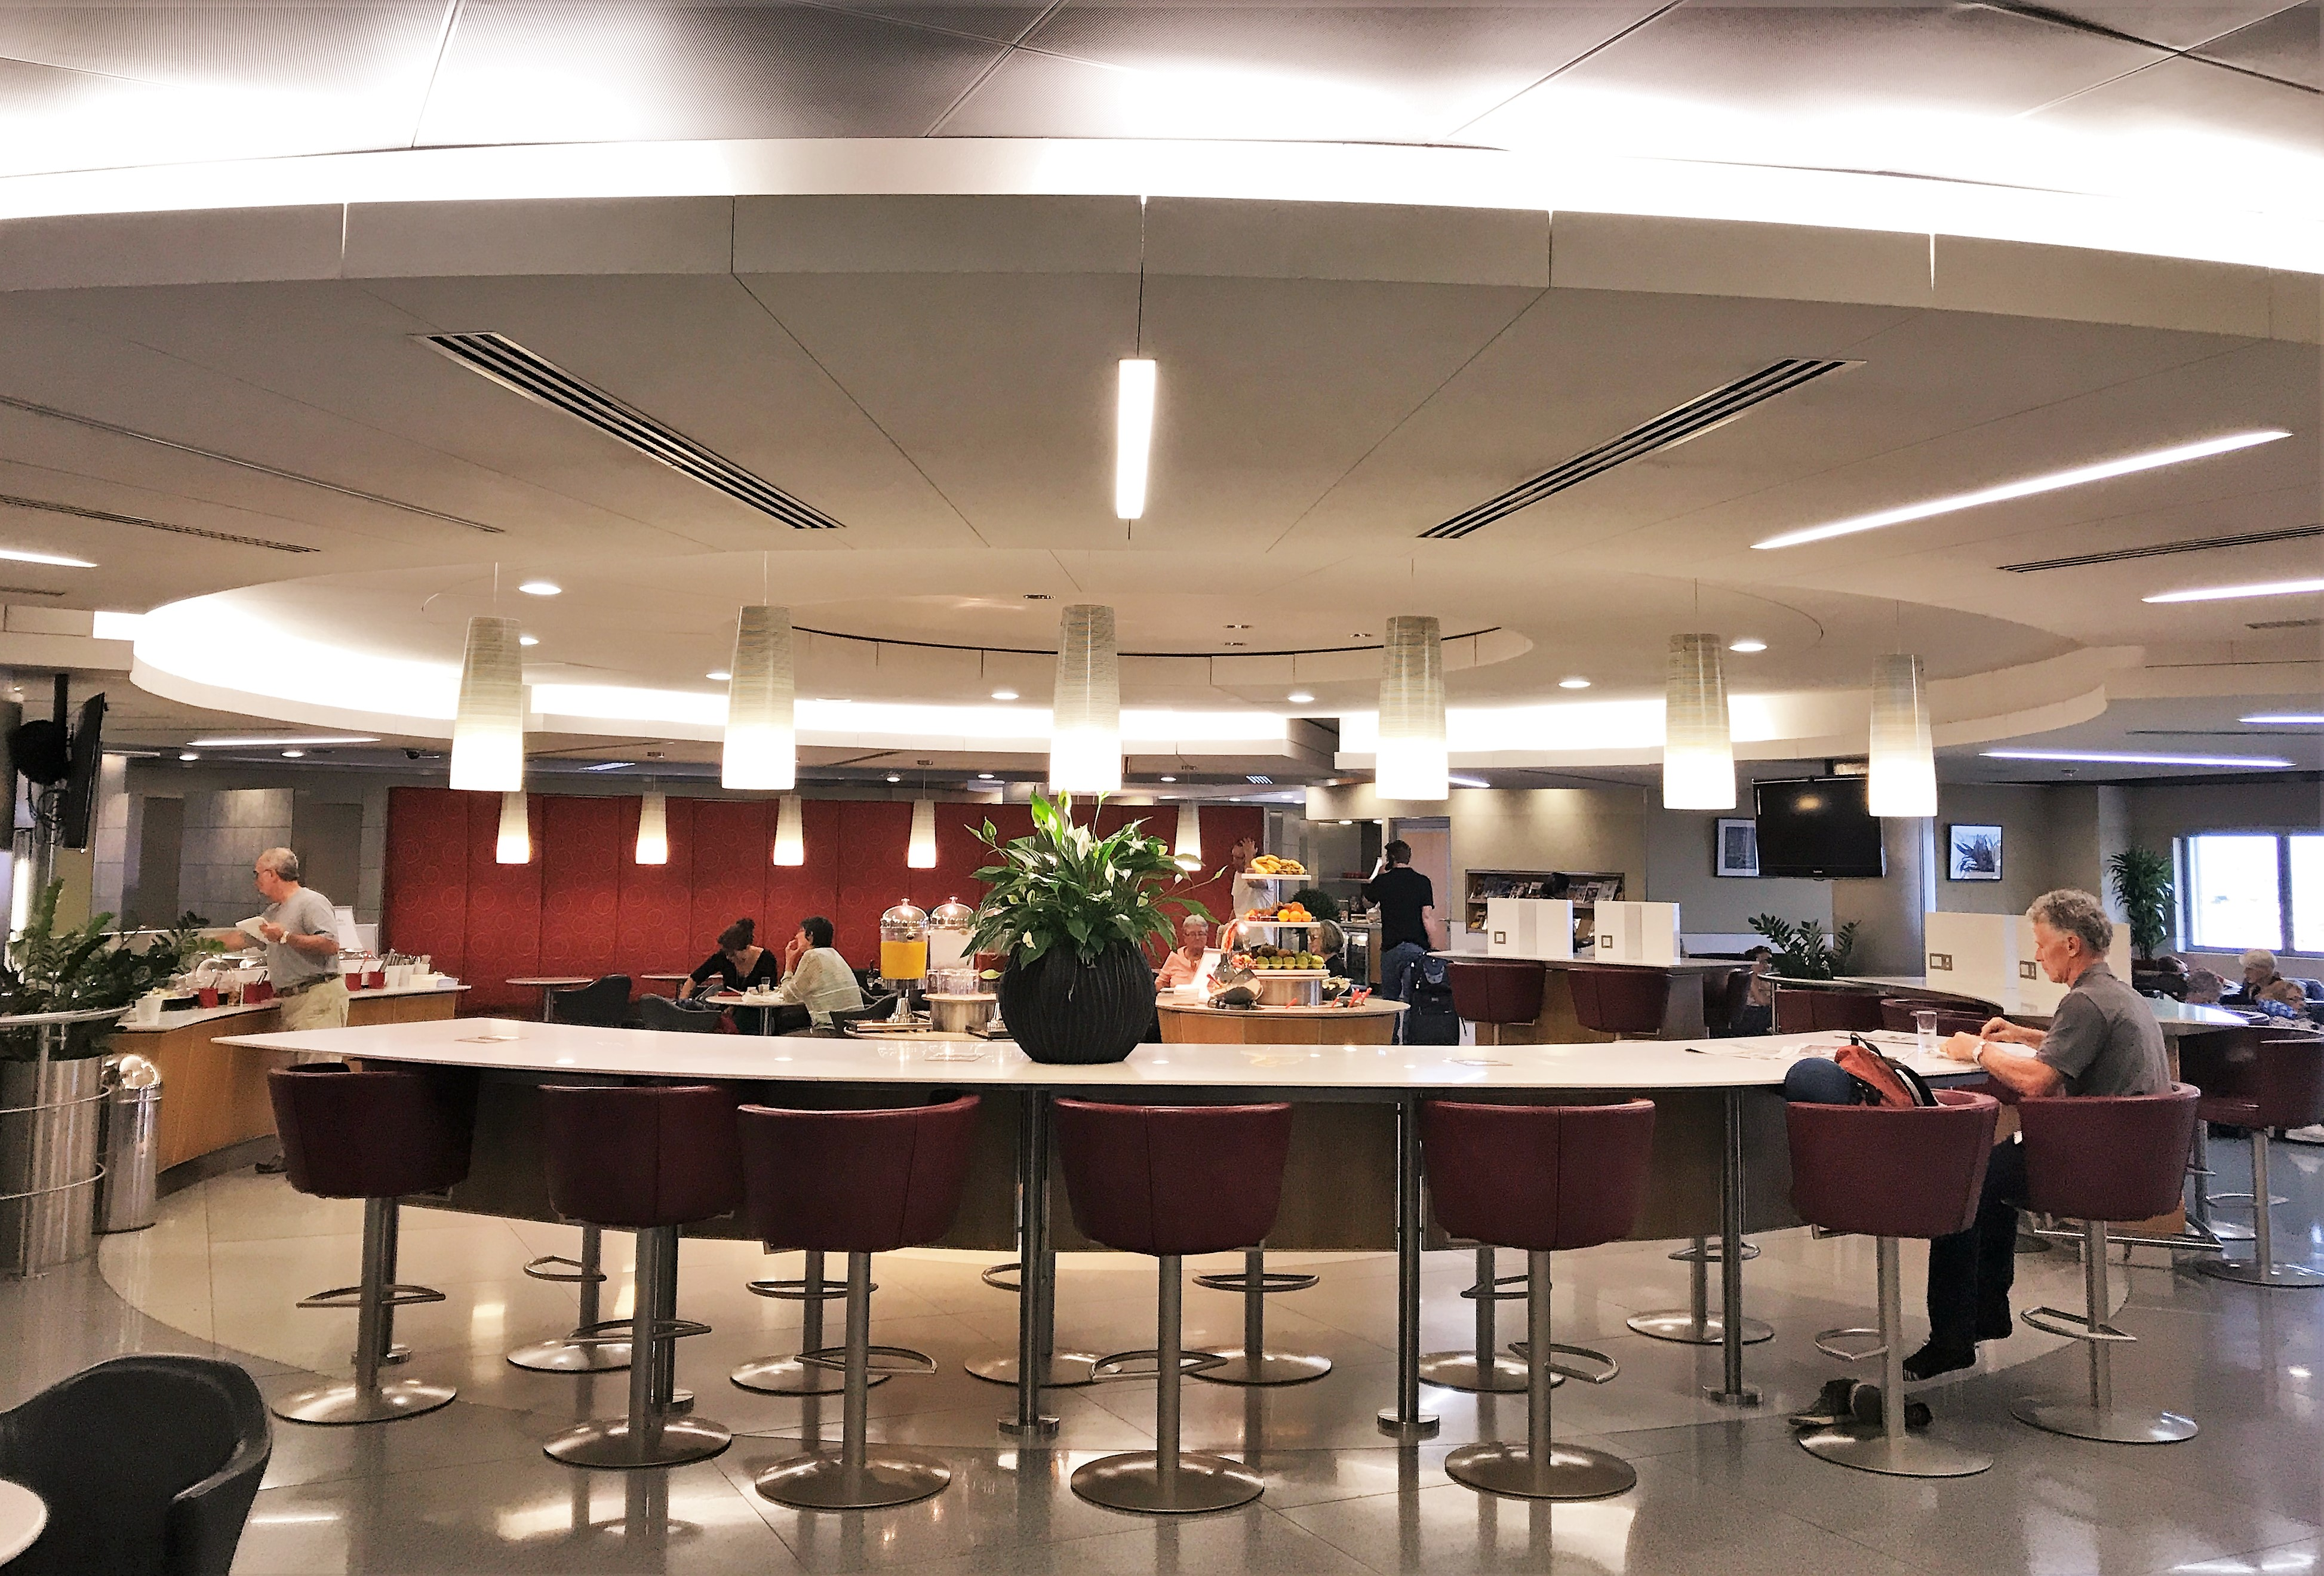 Ba Lounge Terminal 3 >> American Airlines First & Business lounges London Heathrow ...